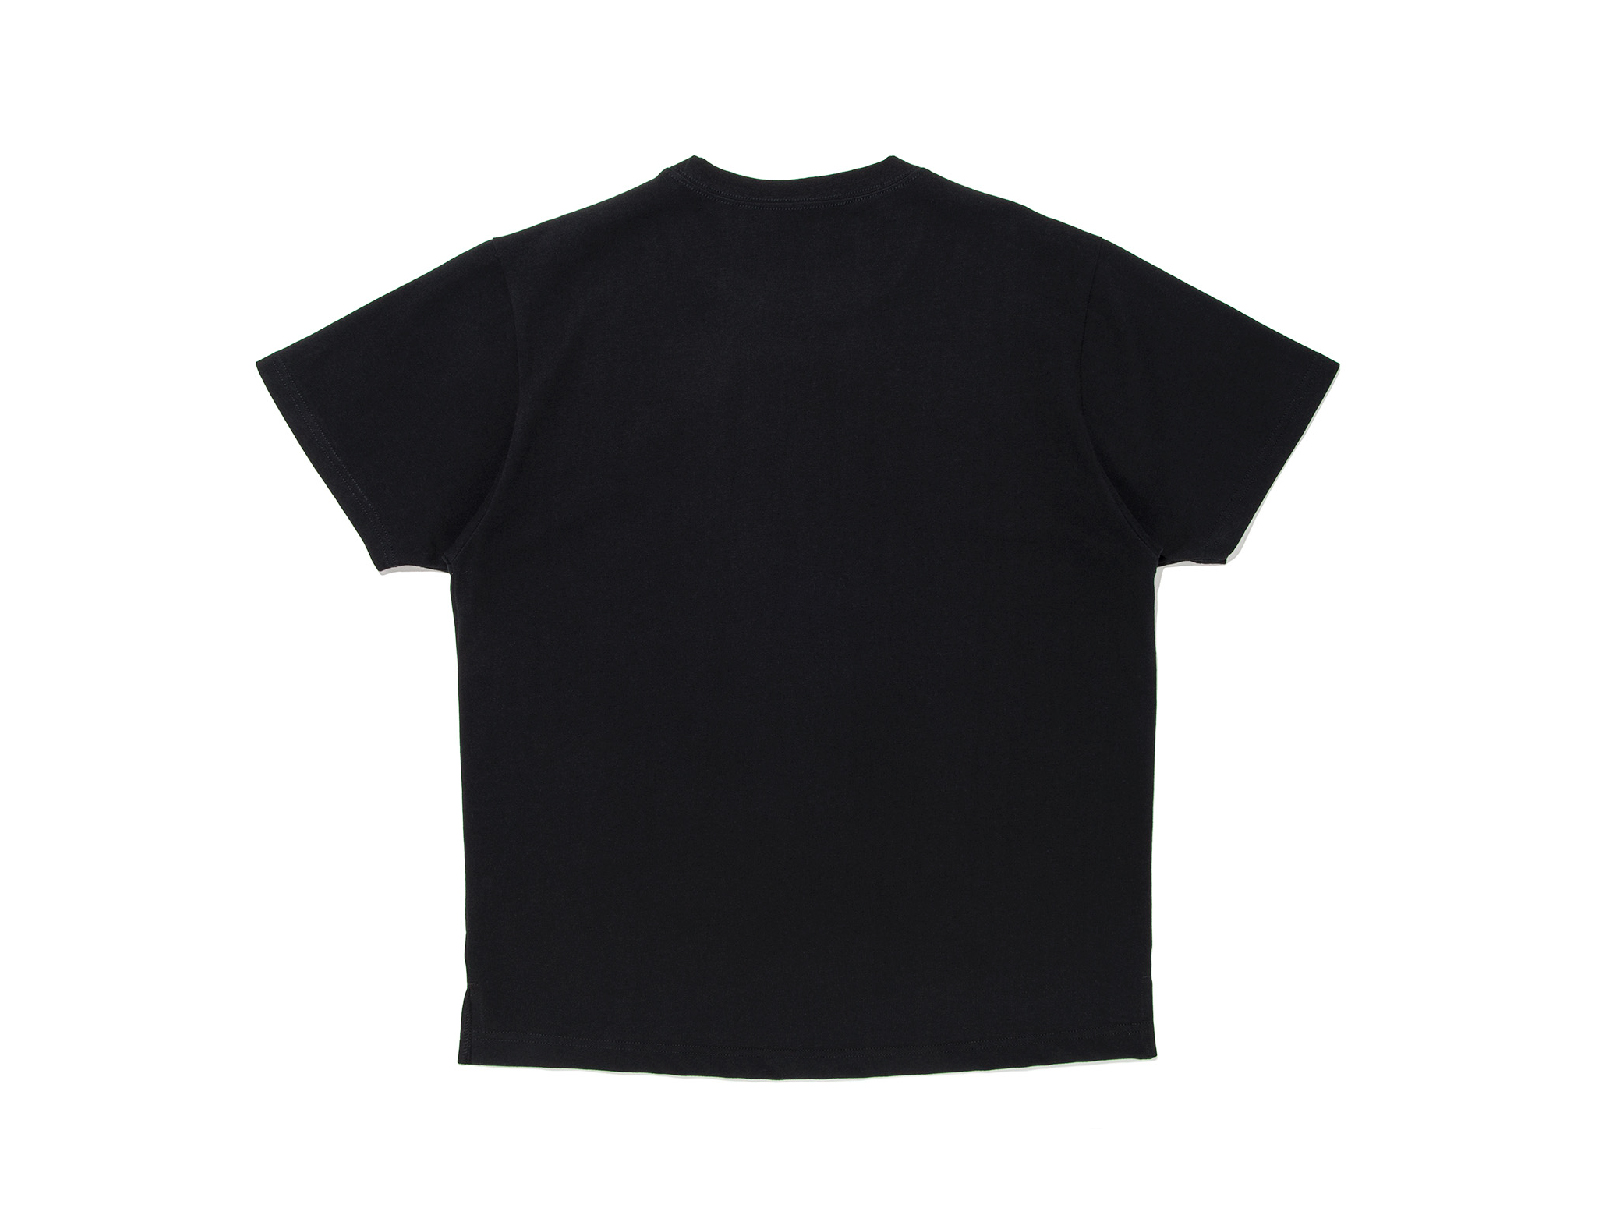 COTTON DRIPPING LOGO S/S TEE